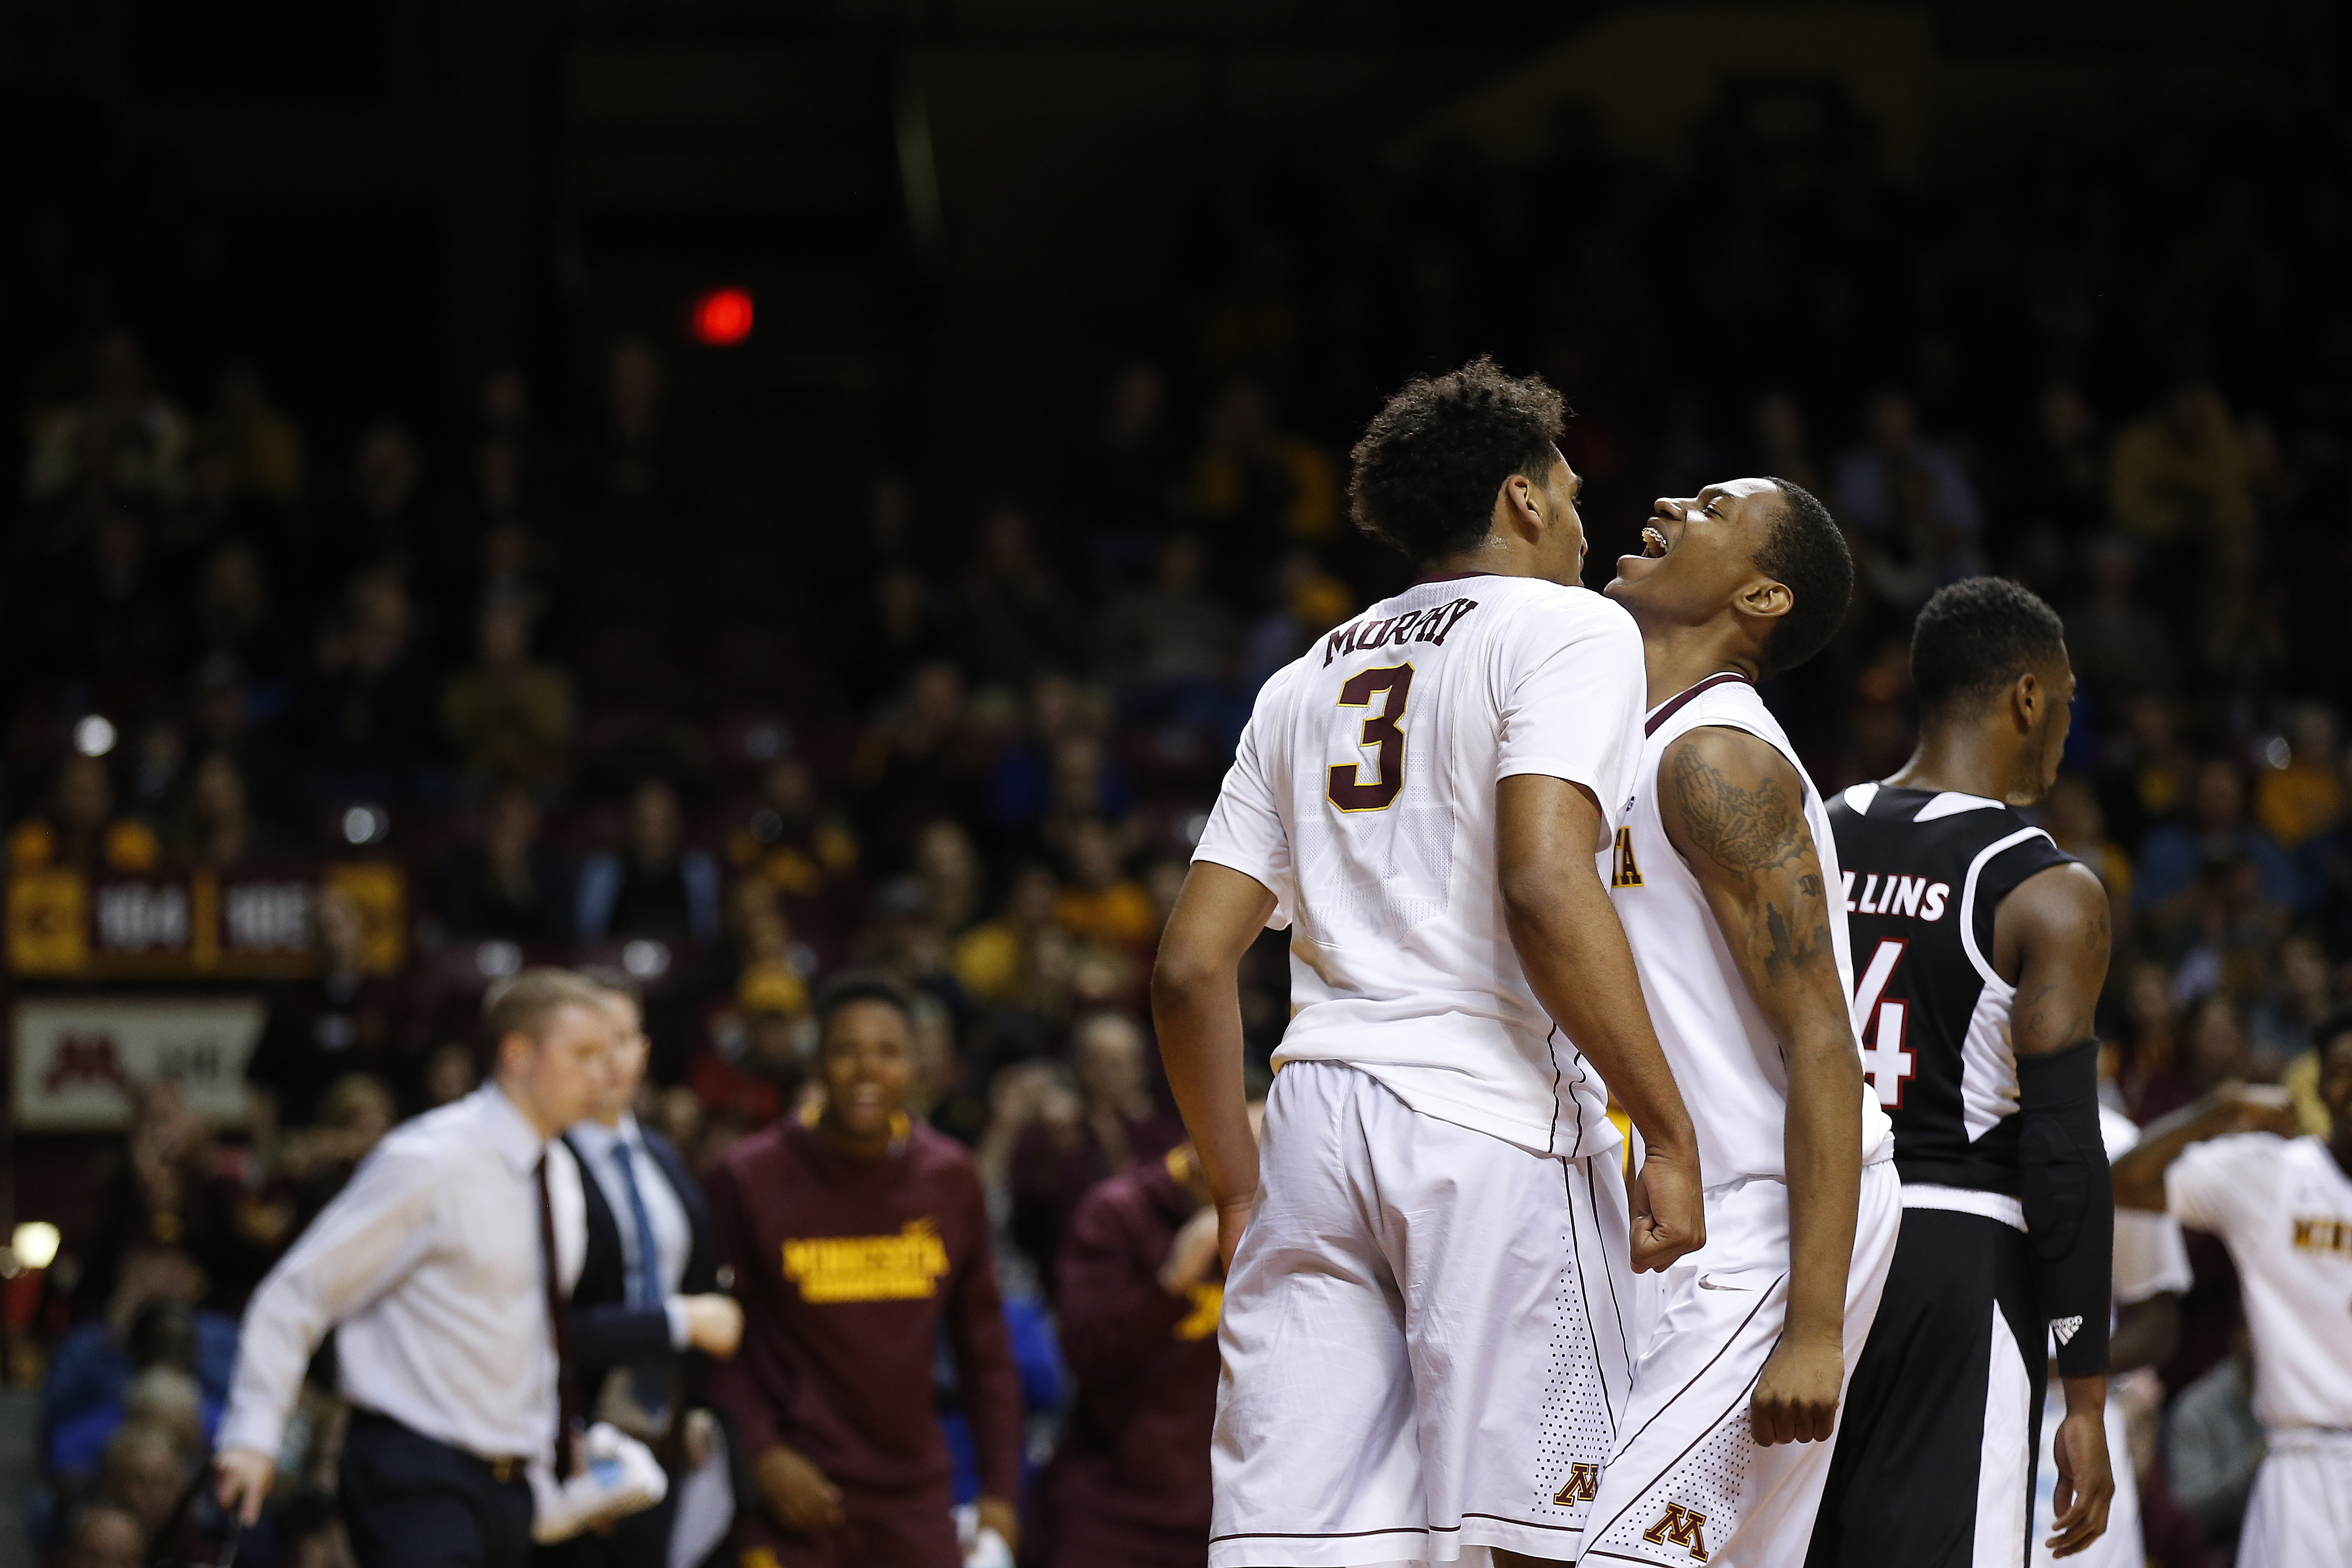 Minnesota forward Jordan Murphy (3) celebrates with teammate guard Dupree McBrayer, right, in the second half of an NCAA college basketball game against Nebraska-Omaha, Friday, Nov. 27, 2015, at Williams Arena in Minneapolis. (AP Photo/Stacy Bengs)